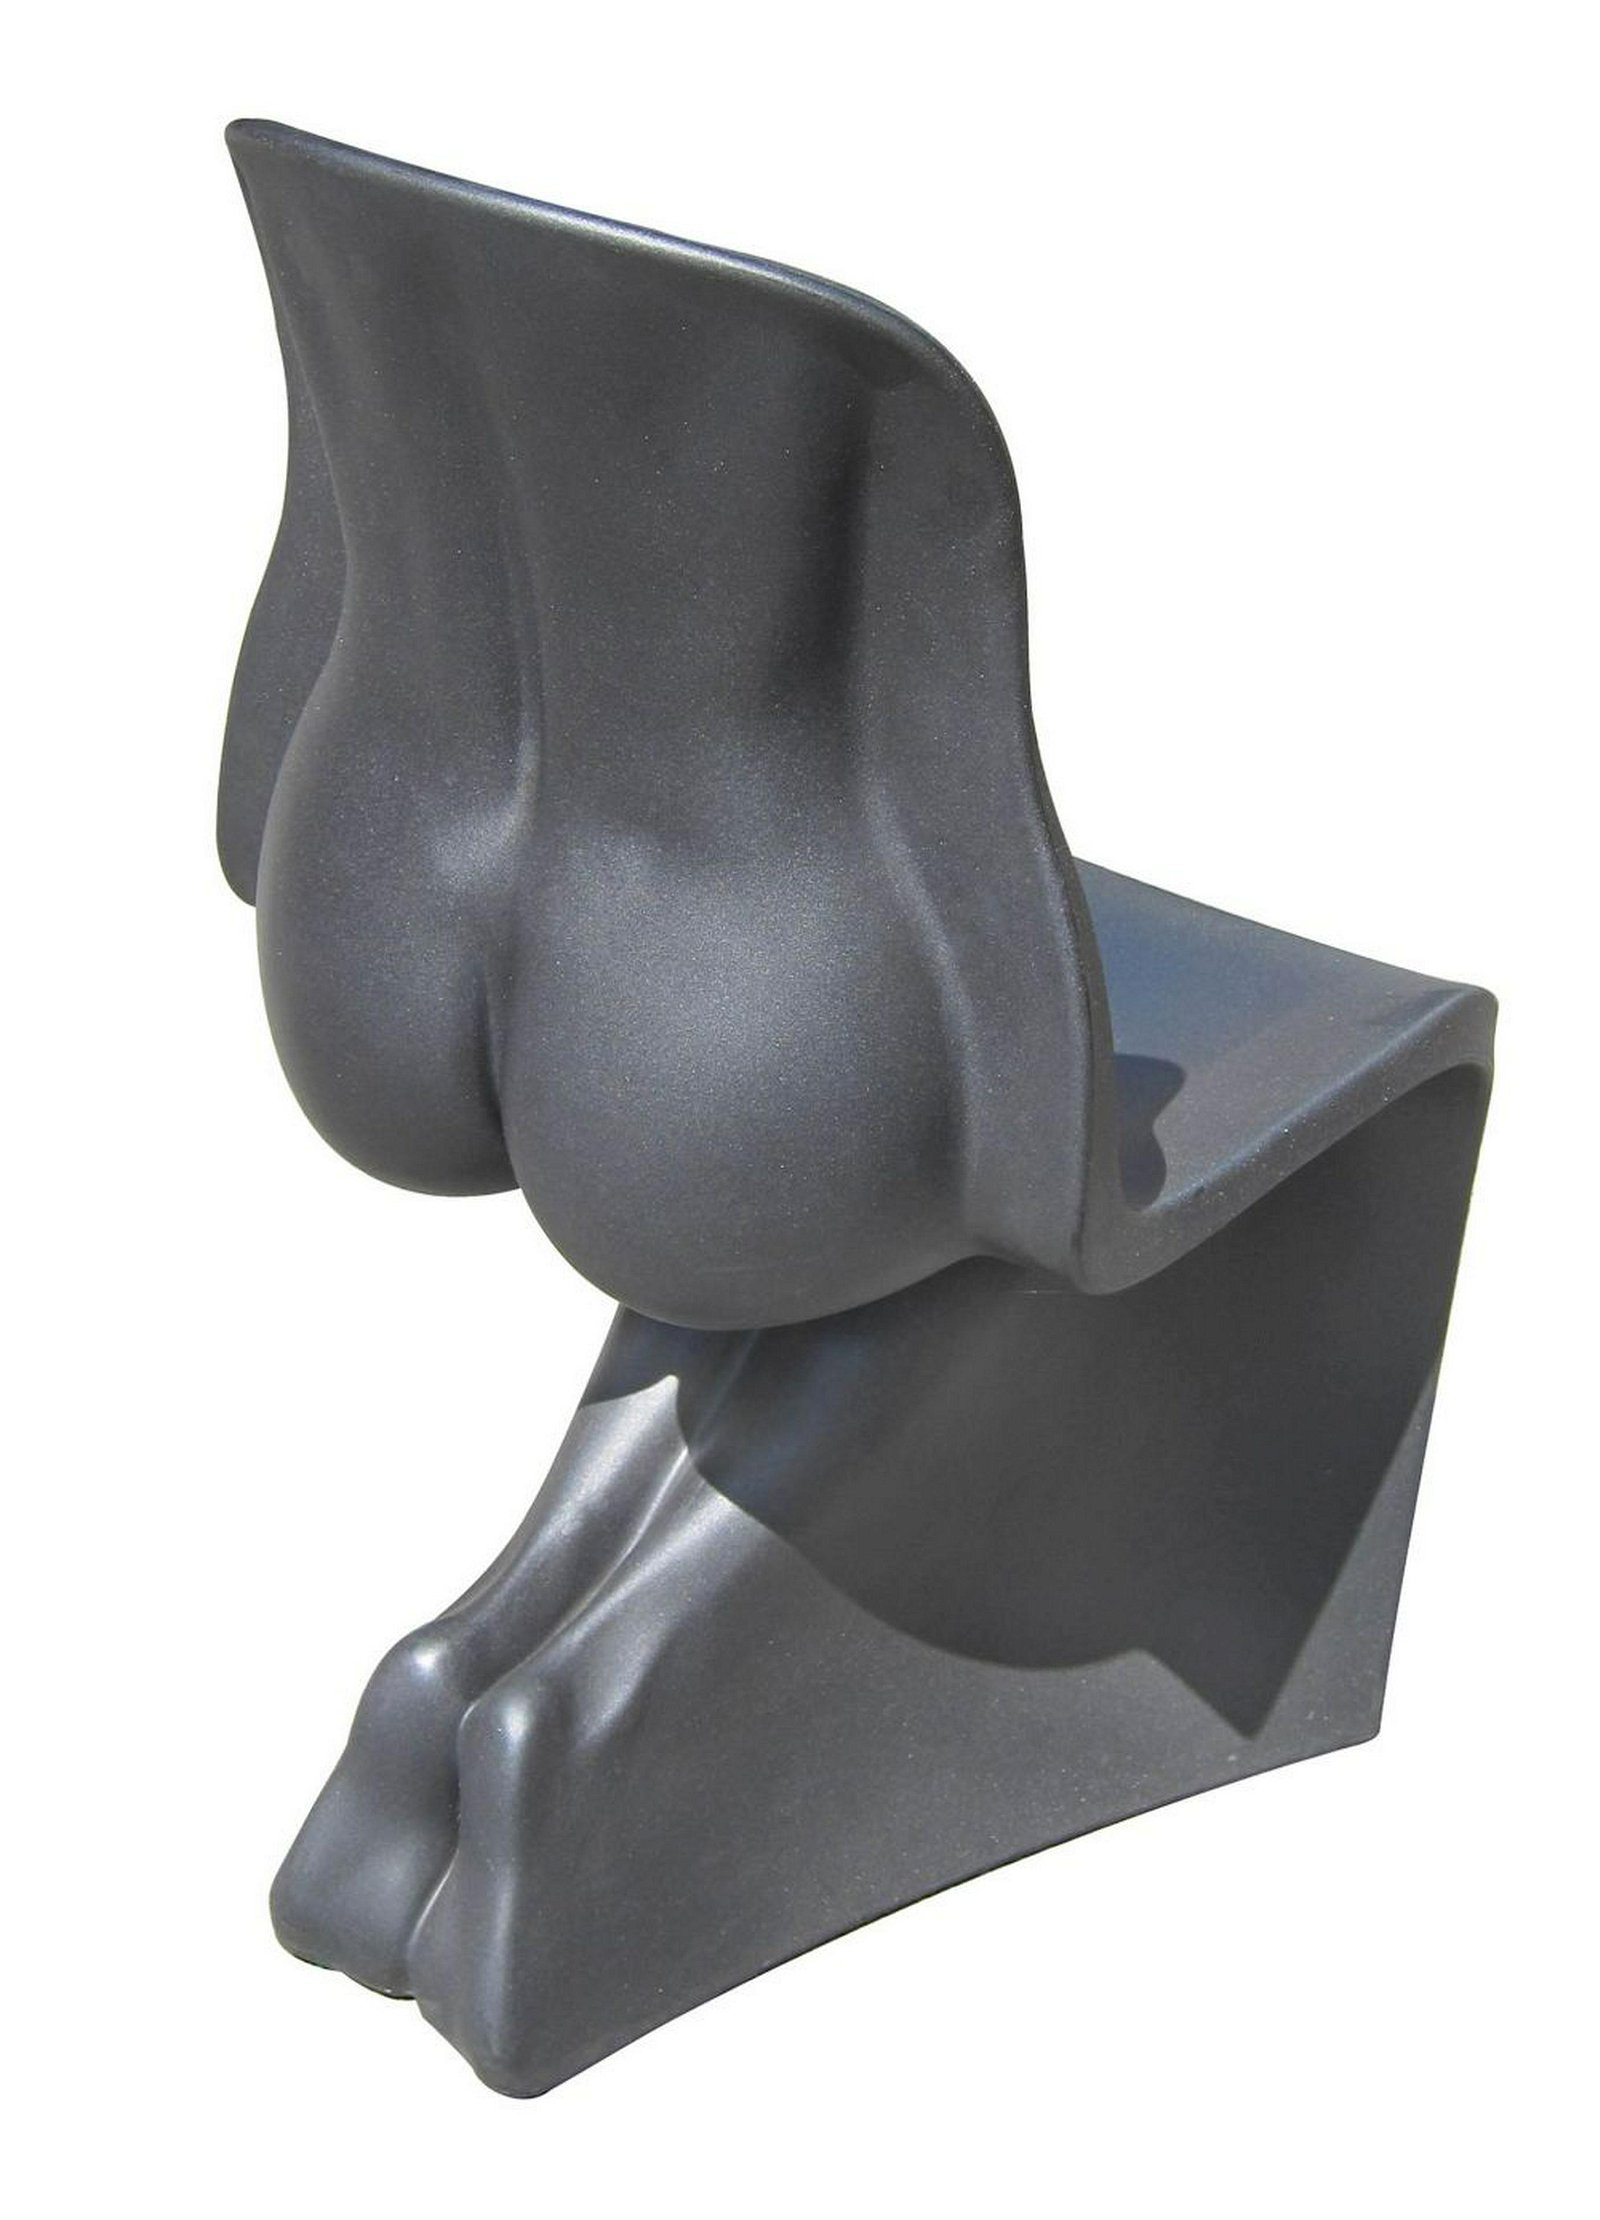 Her chair designed by Fabio Novembre